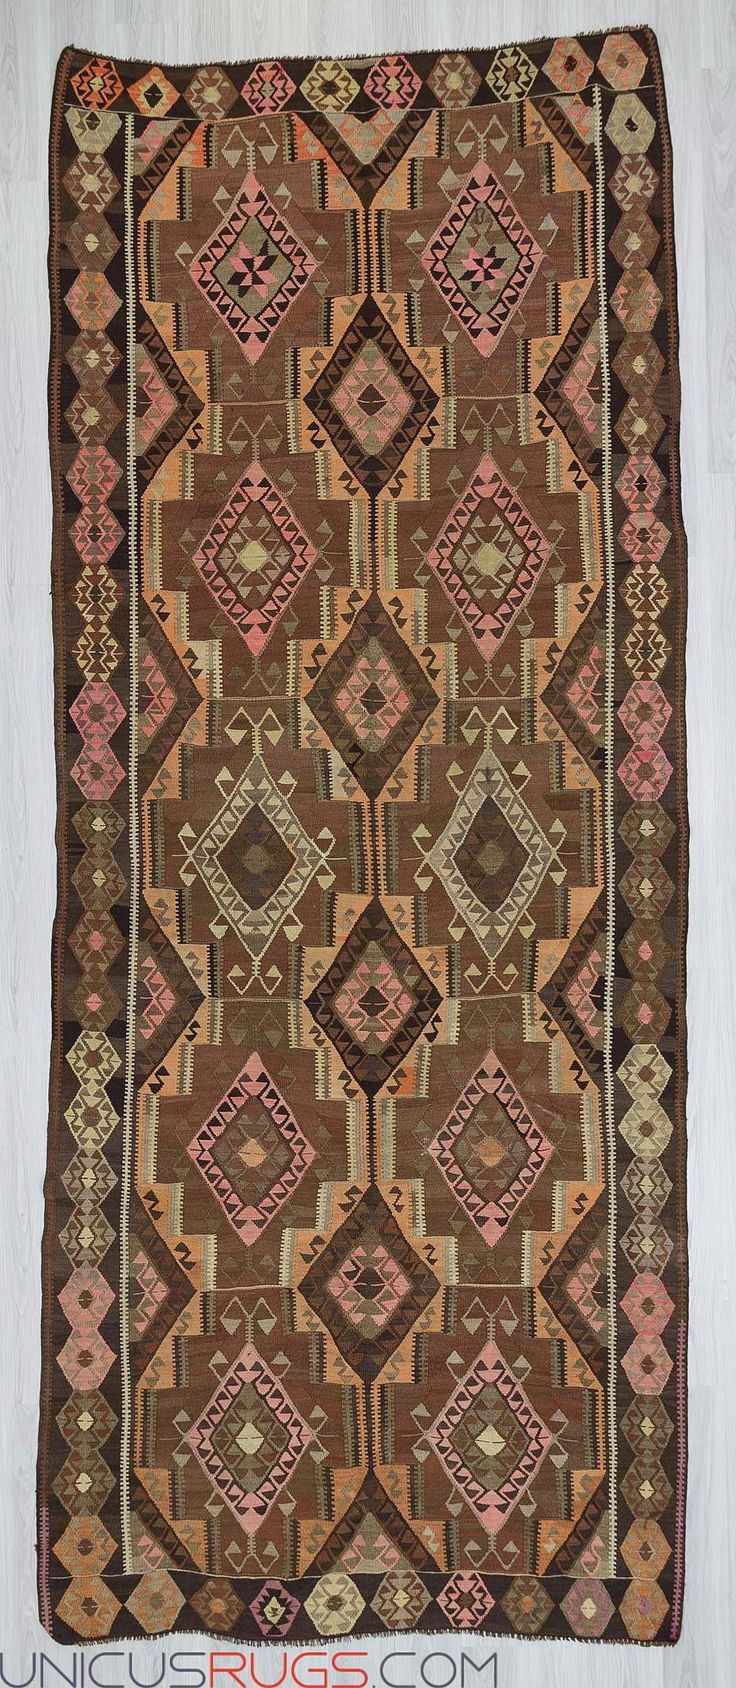 """Vintage kilim rug from Kars region of Turkey.In very good condition.Approximaley 55-65 years old Width: 6' 2"""" - Length: 15' 3""""  Colorful Kilims"""